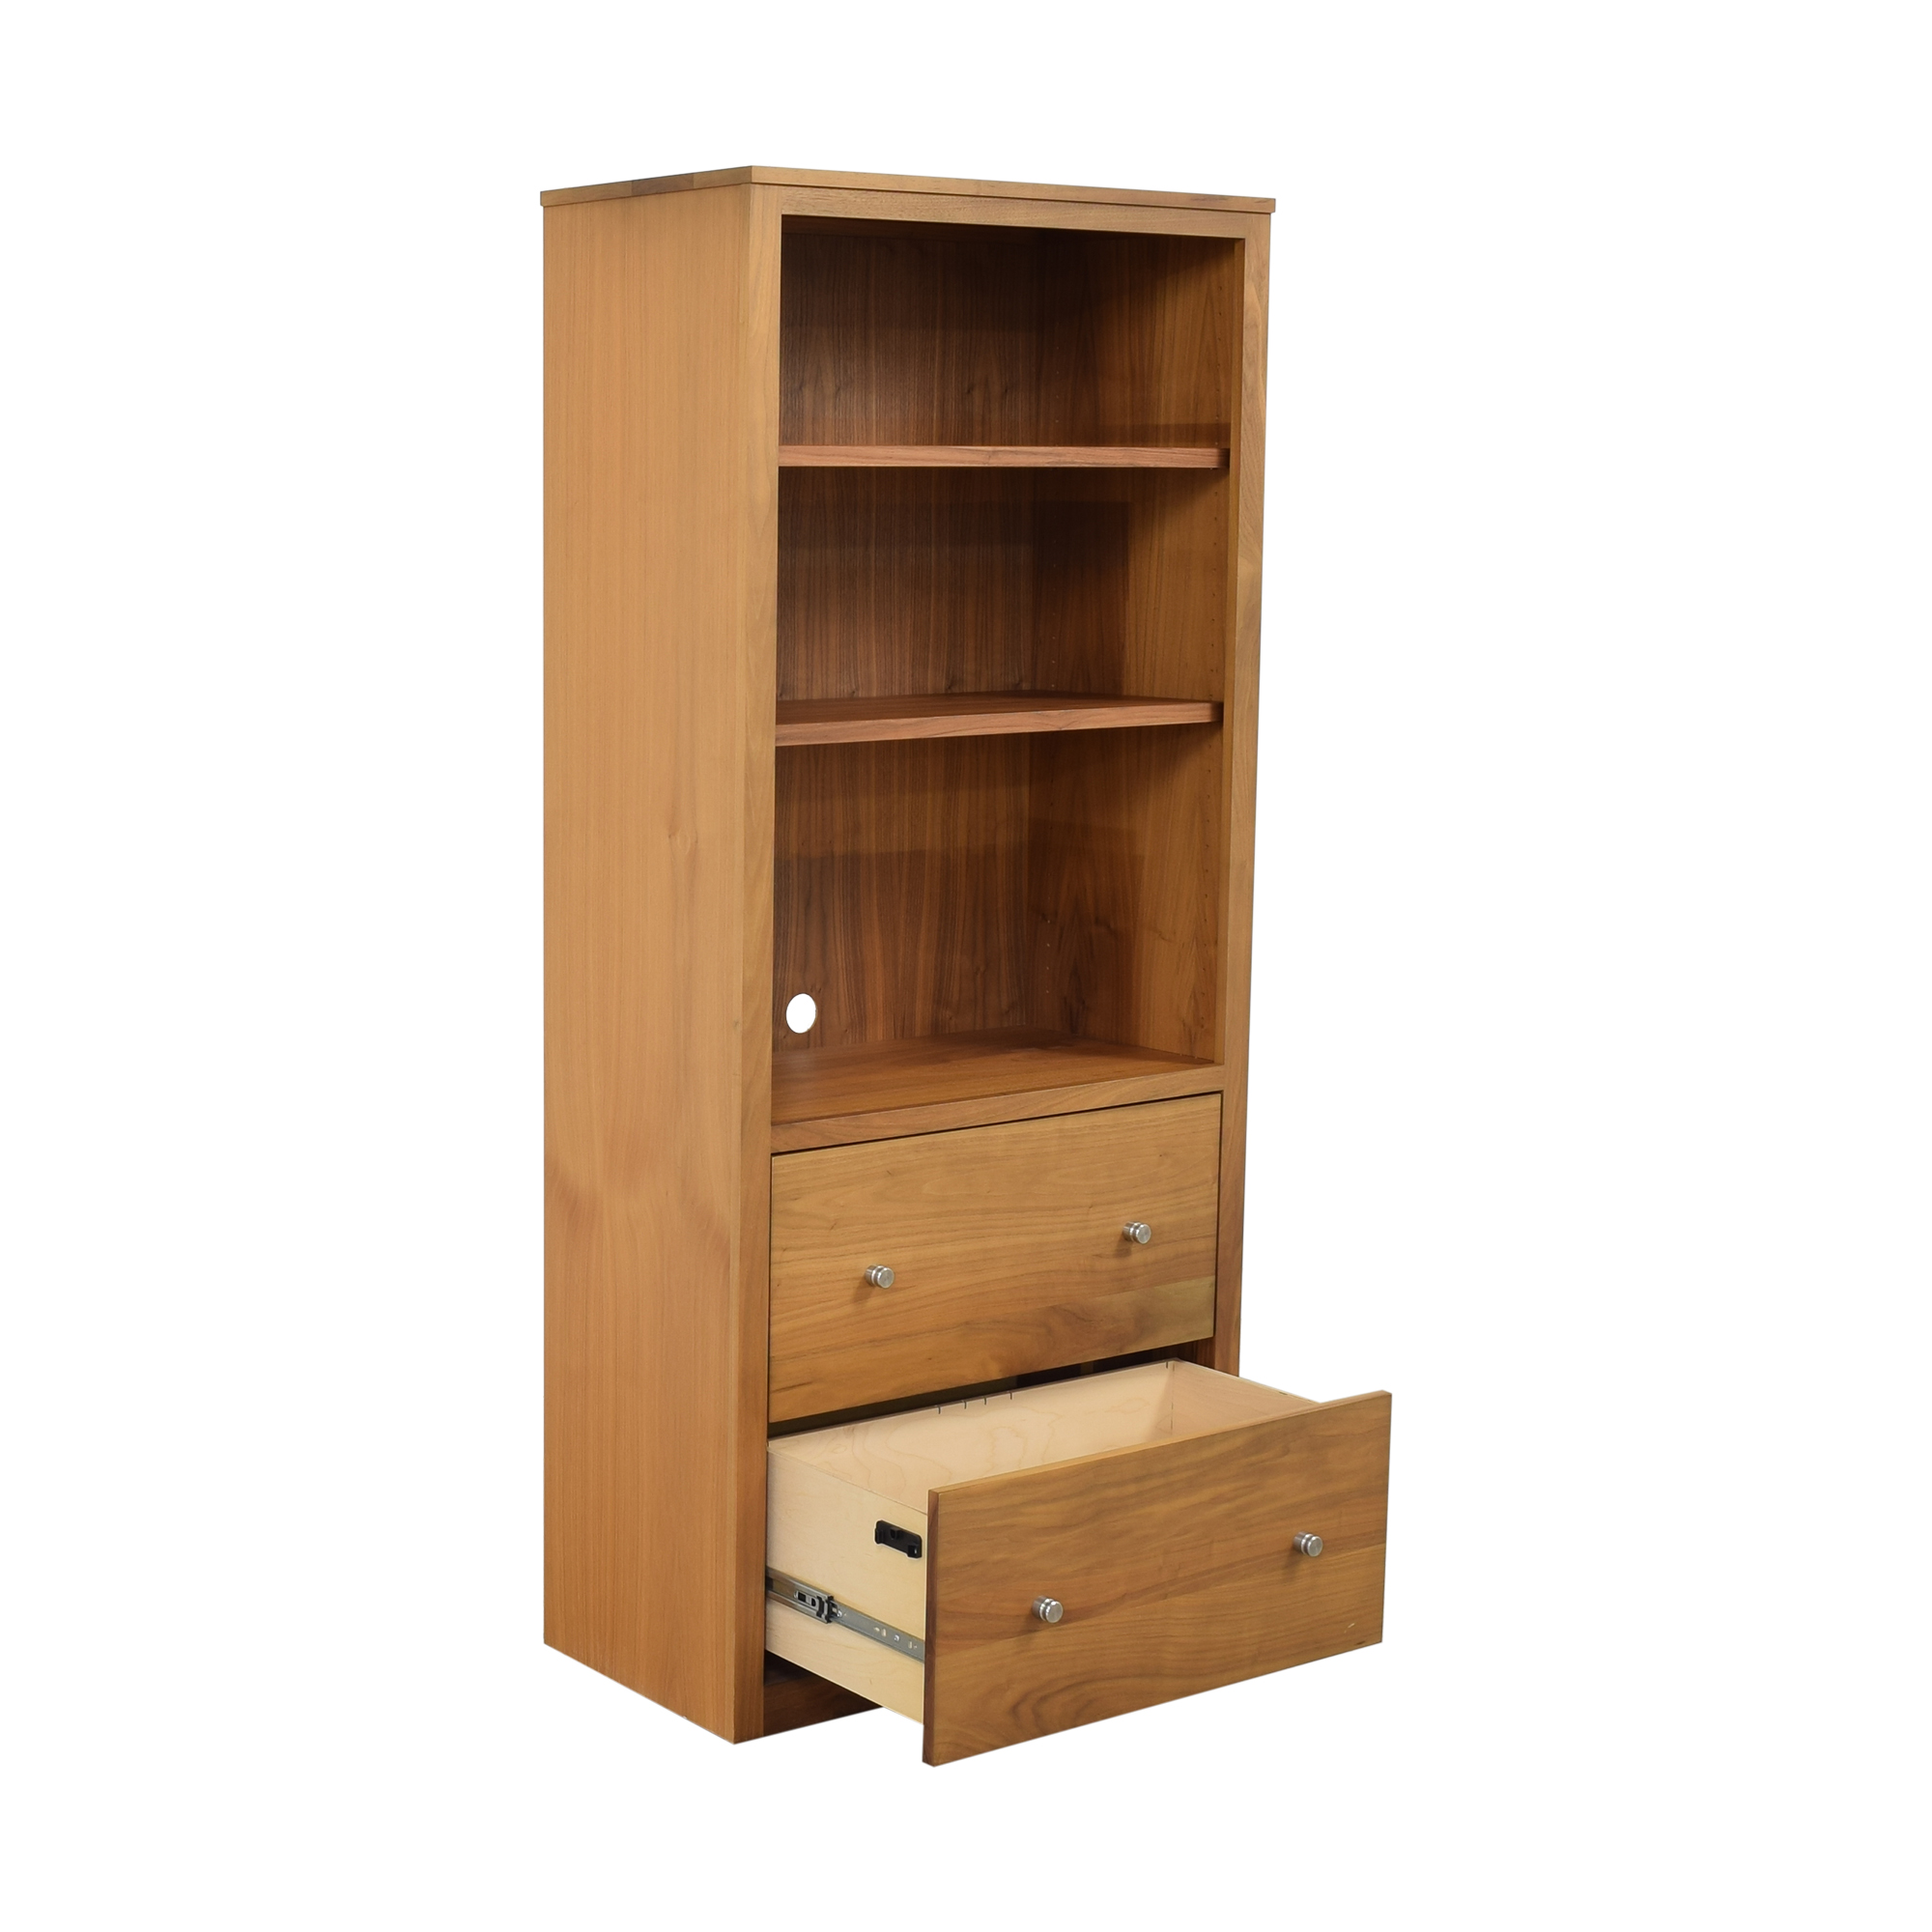 Room & Board Woodwind Bookcase with Drawers Room & Board